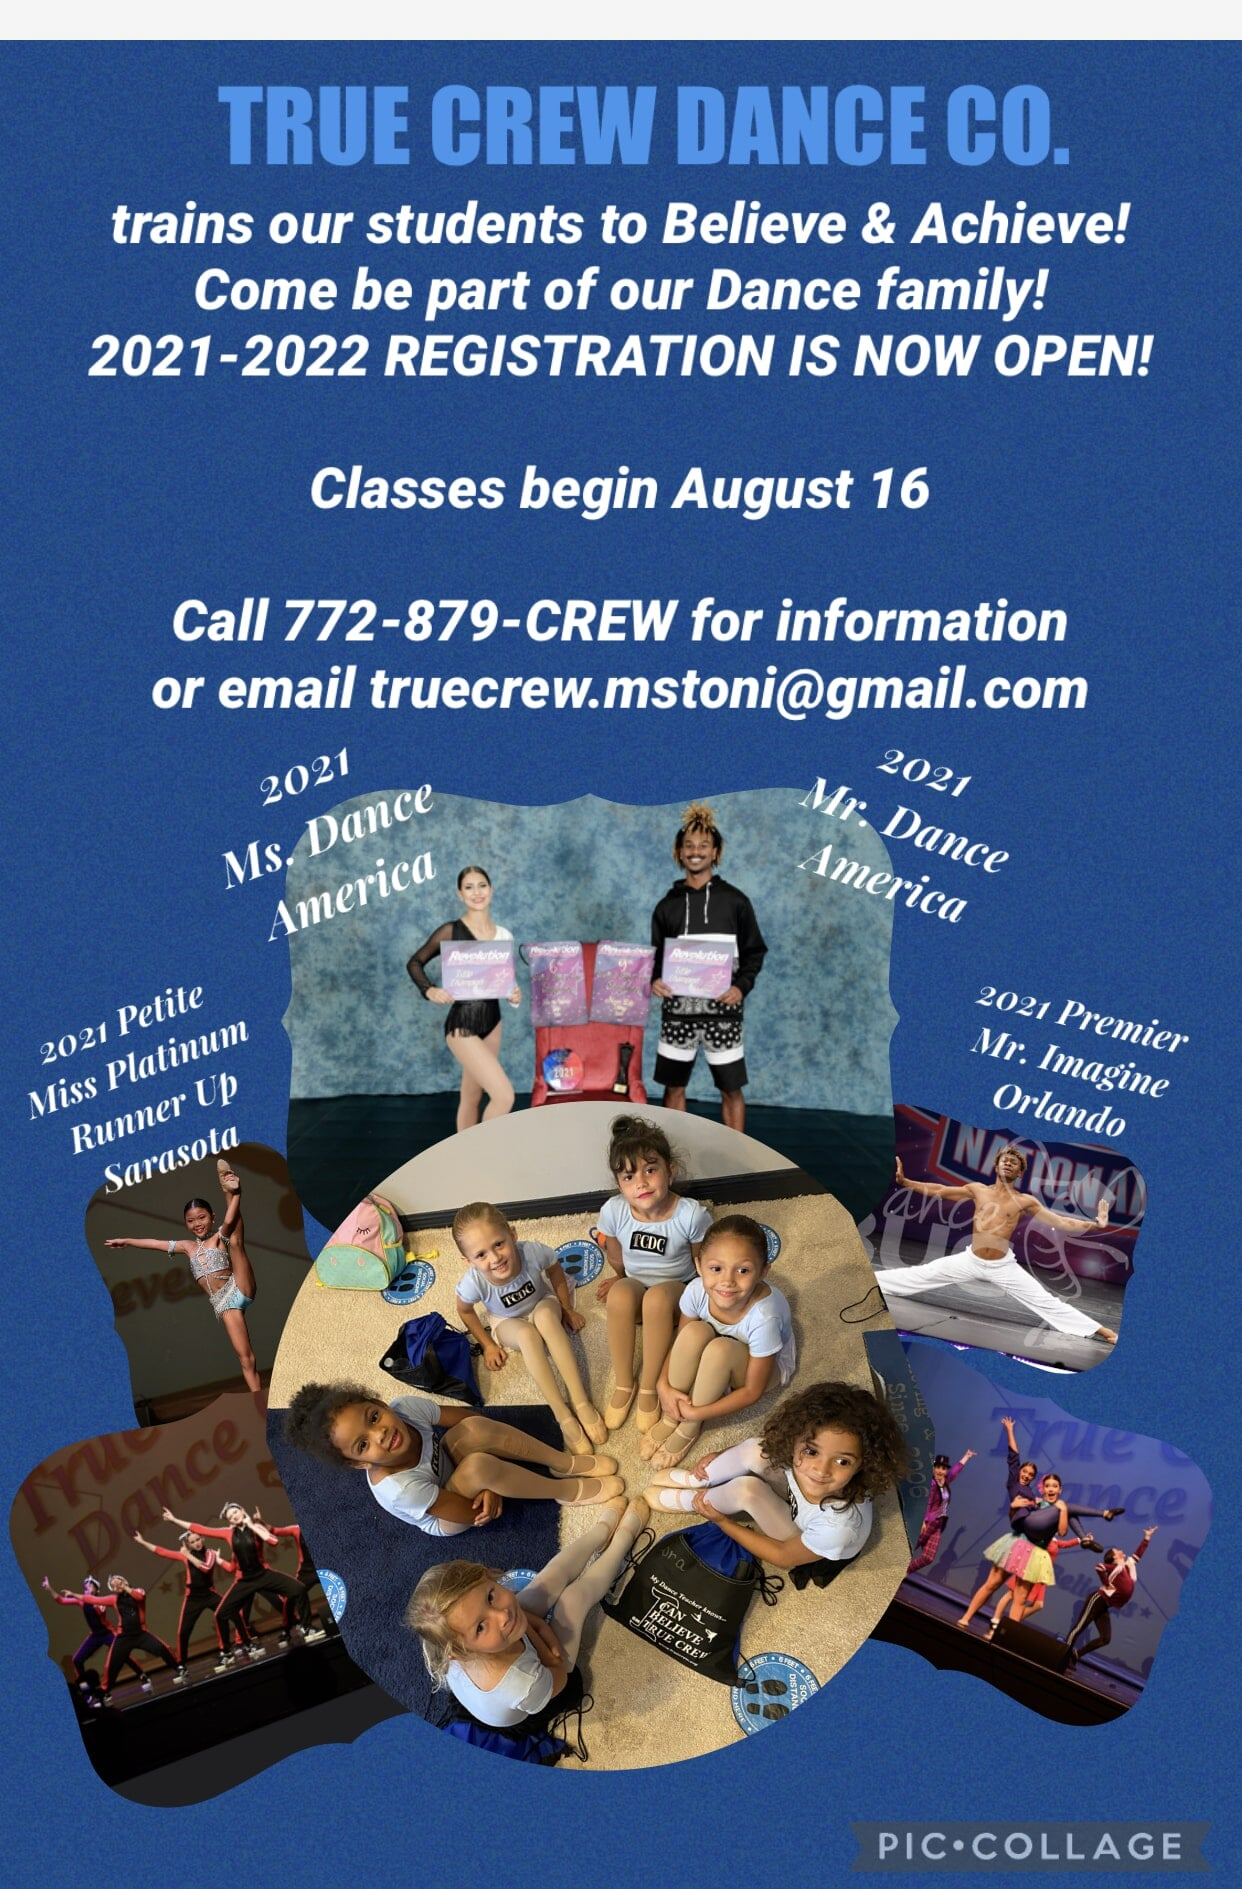 Be Part of our Dance Family